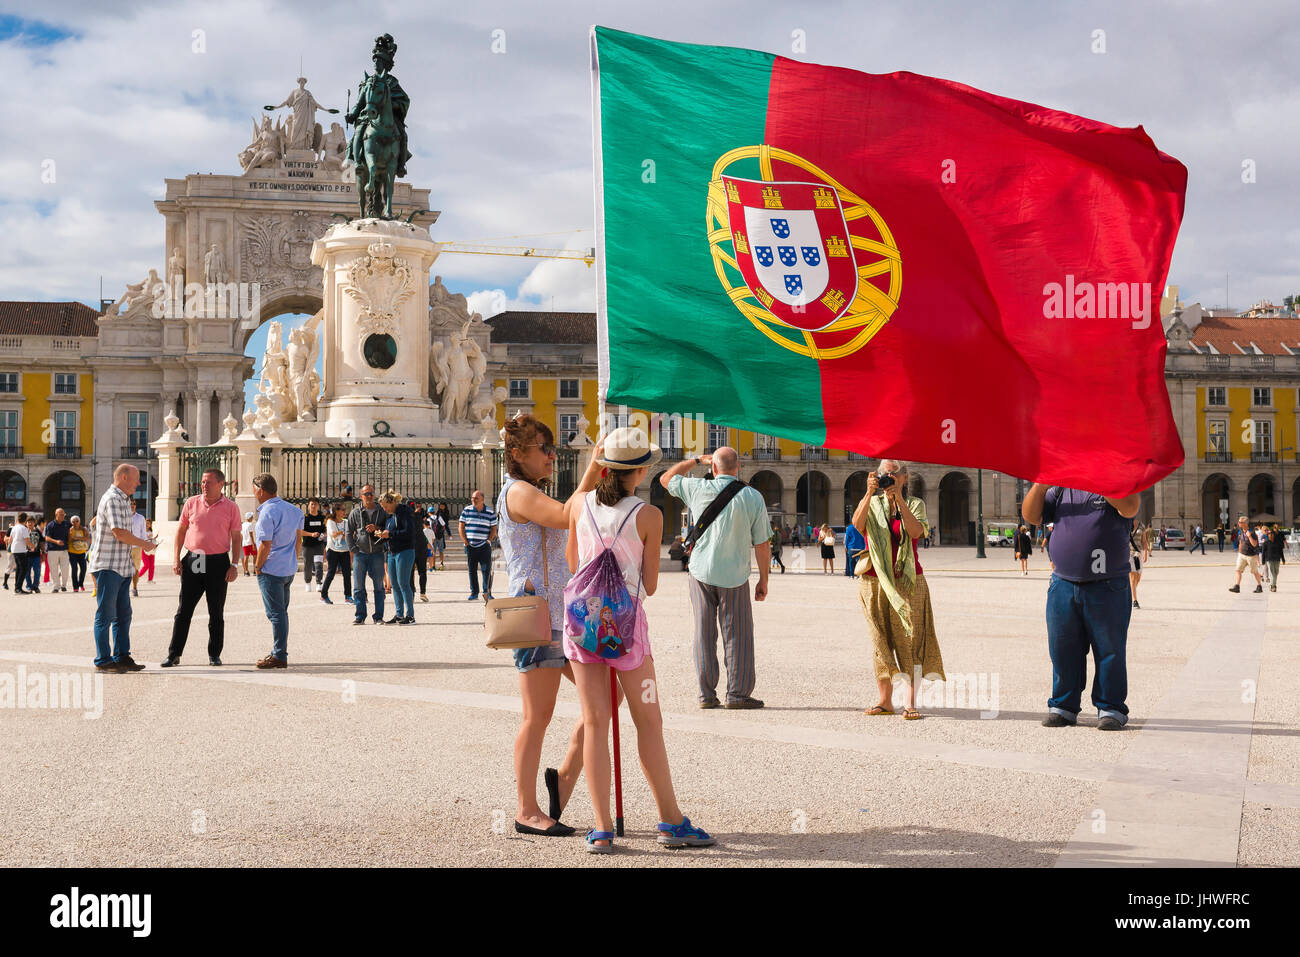 Lisbon city centre, in the Praca do Comercio tourists hold a large Portuguese flag while having their photo taken, - Stock Image